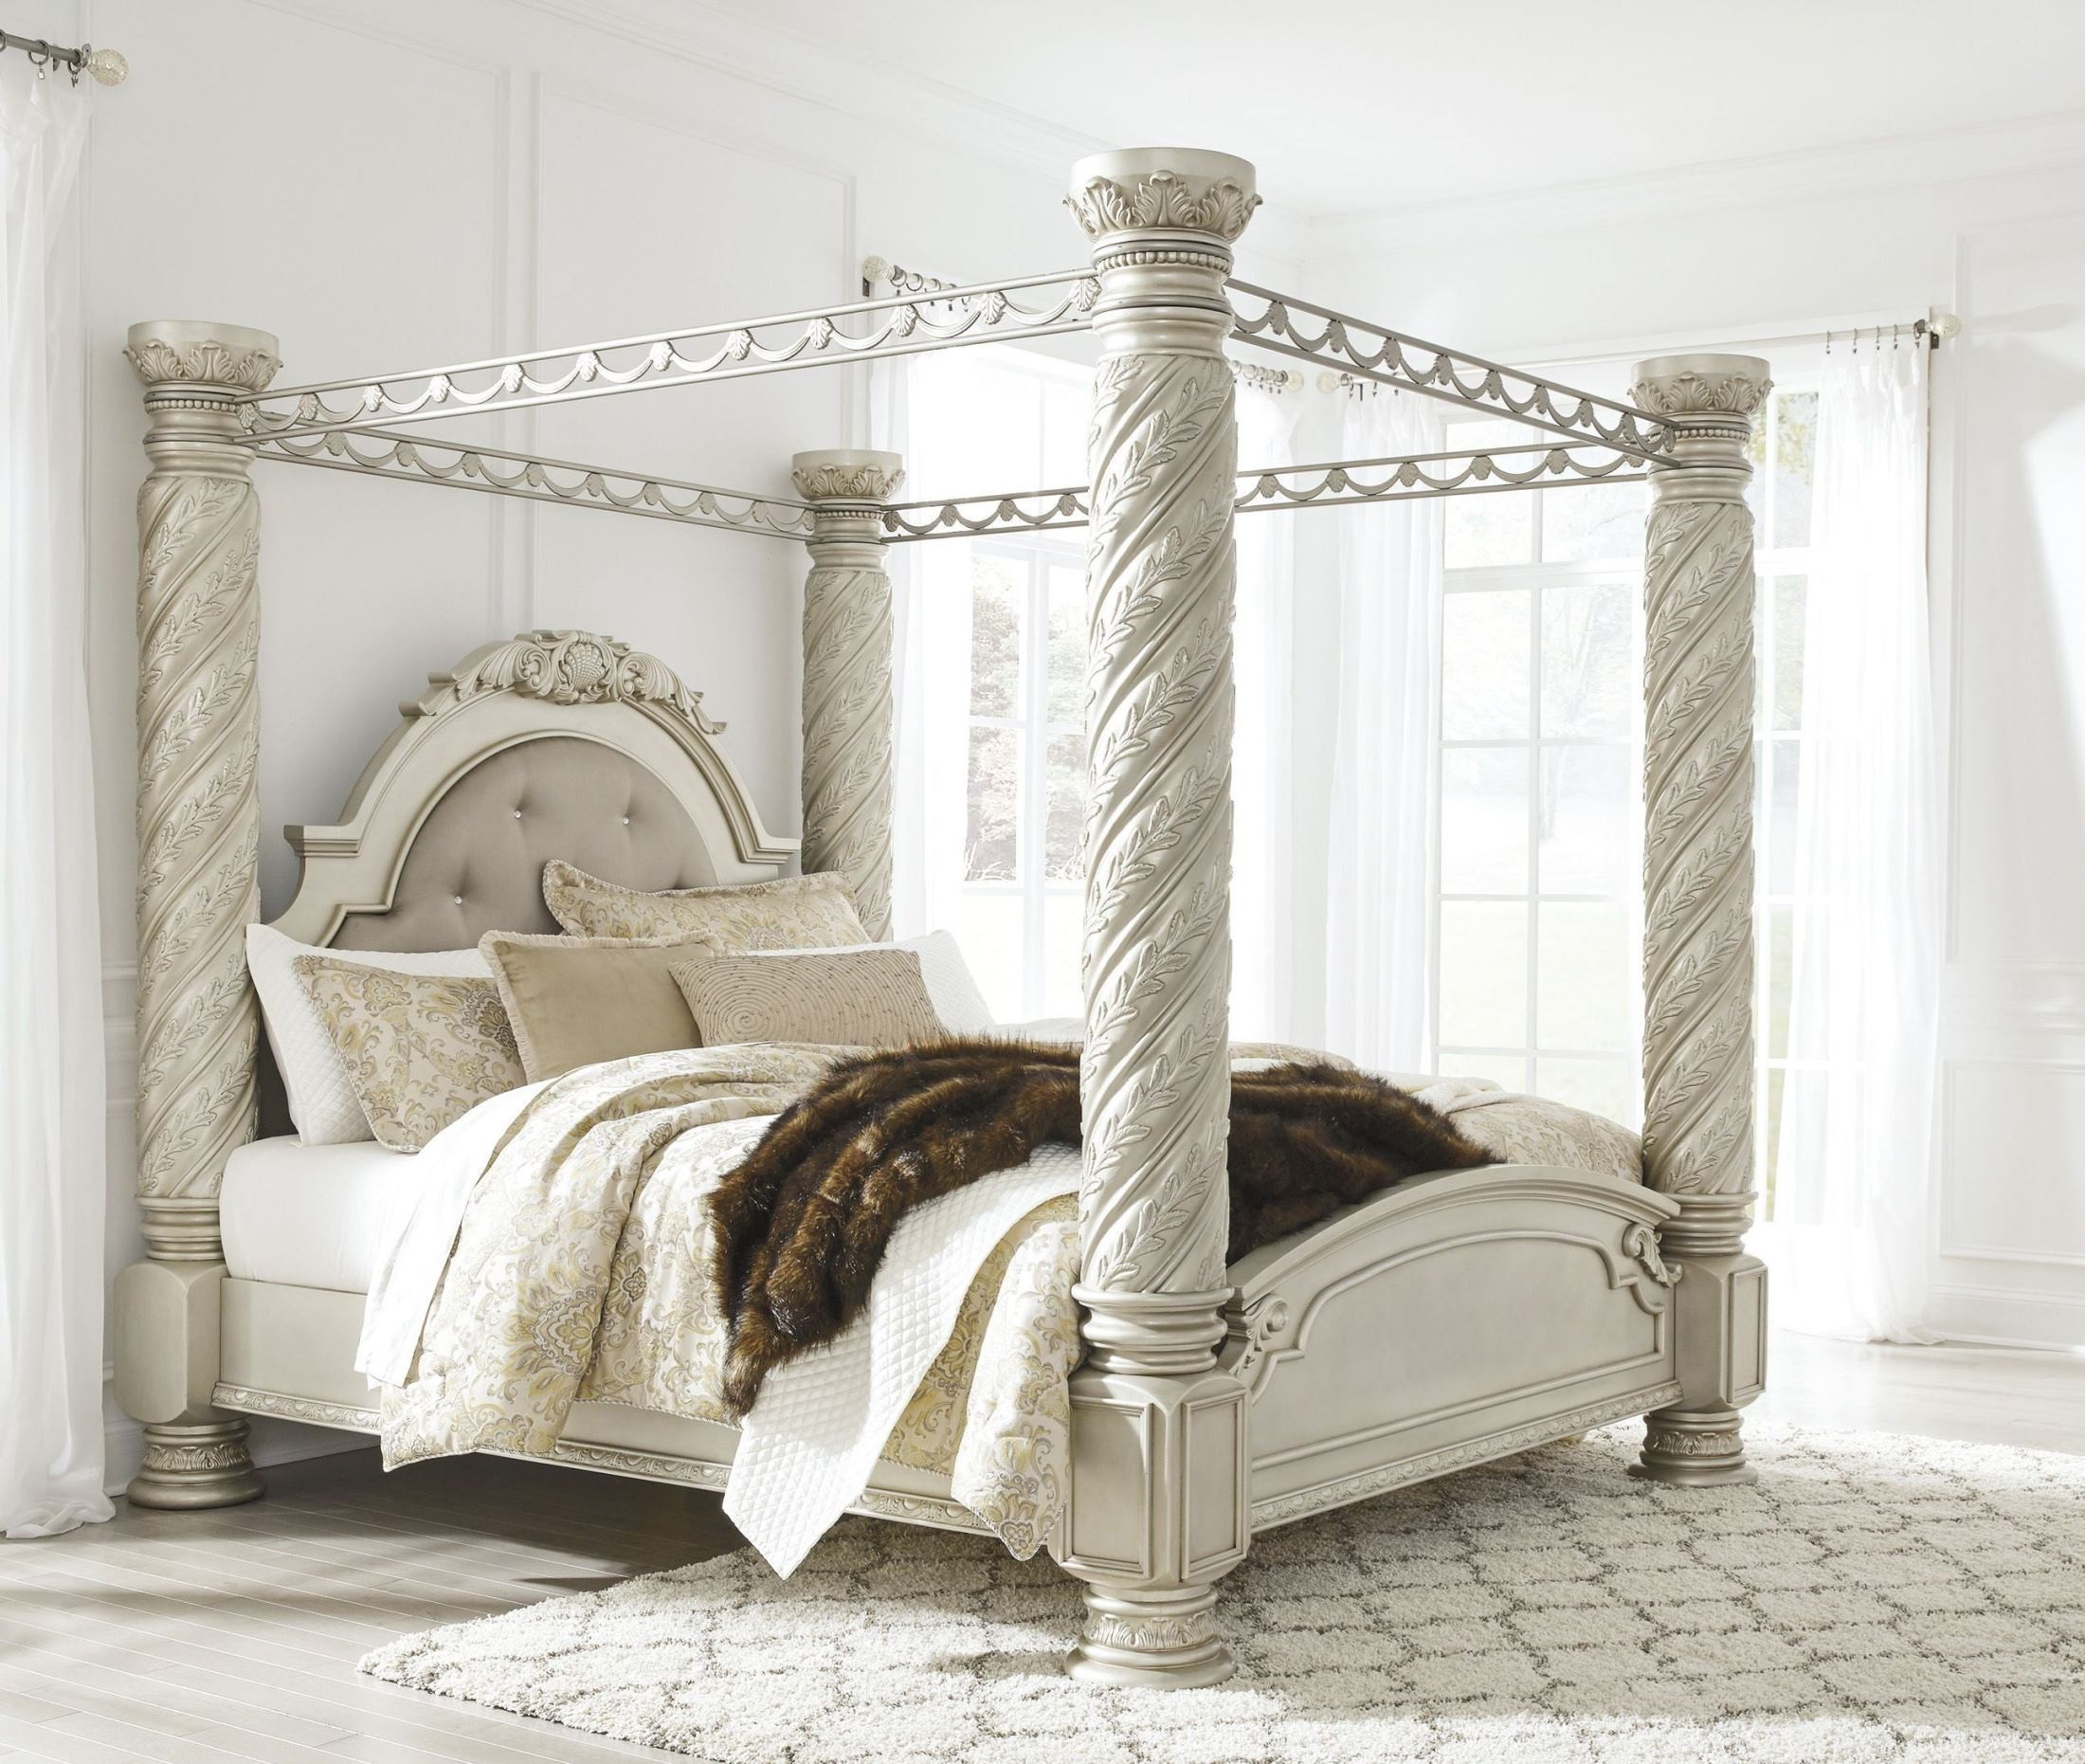 with by classic heart children ivory folks furniture jewelry traditional design british little for storage vanit vanity kids bed quality bedroom white